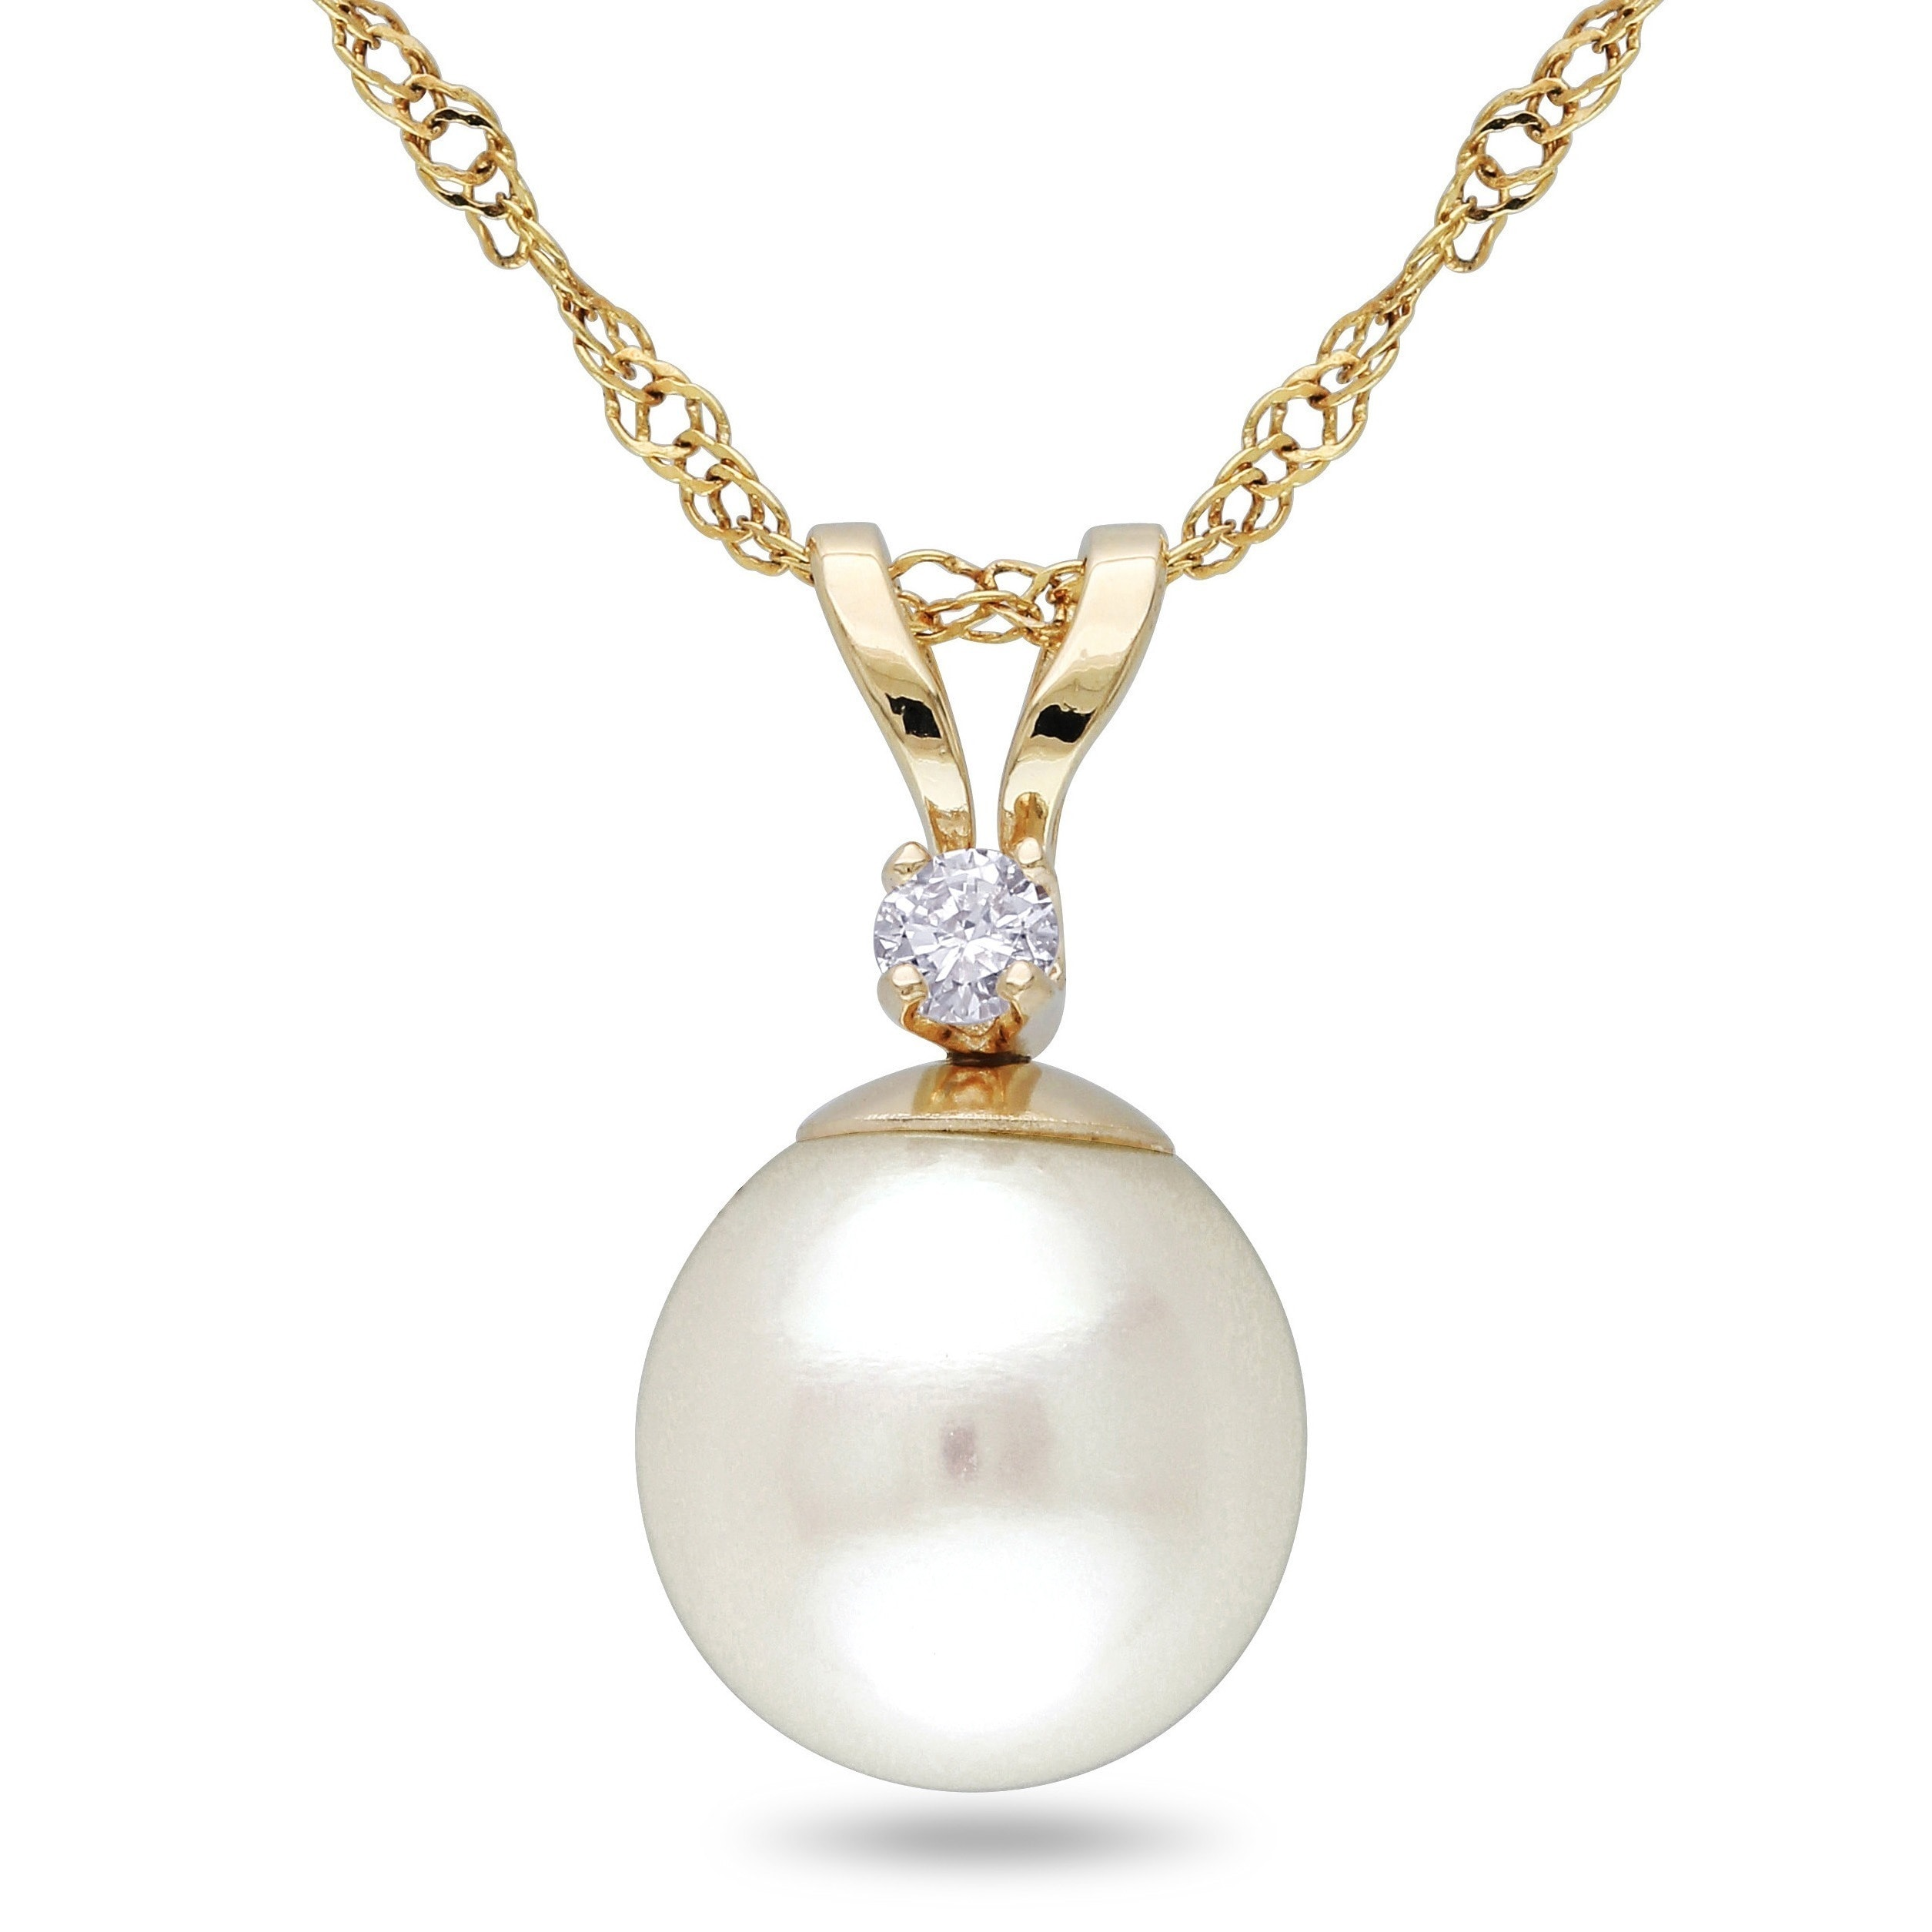 pearl necklace of dia cap mother with diamond jacquie aiche bezel products pave yg freeform